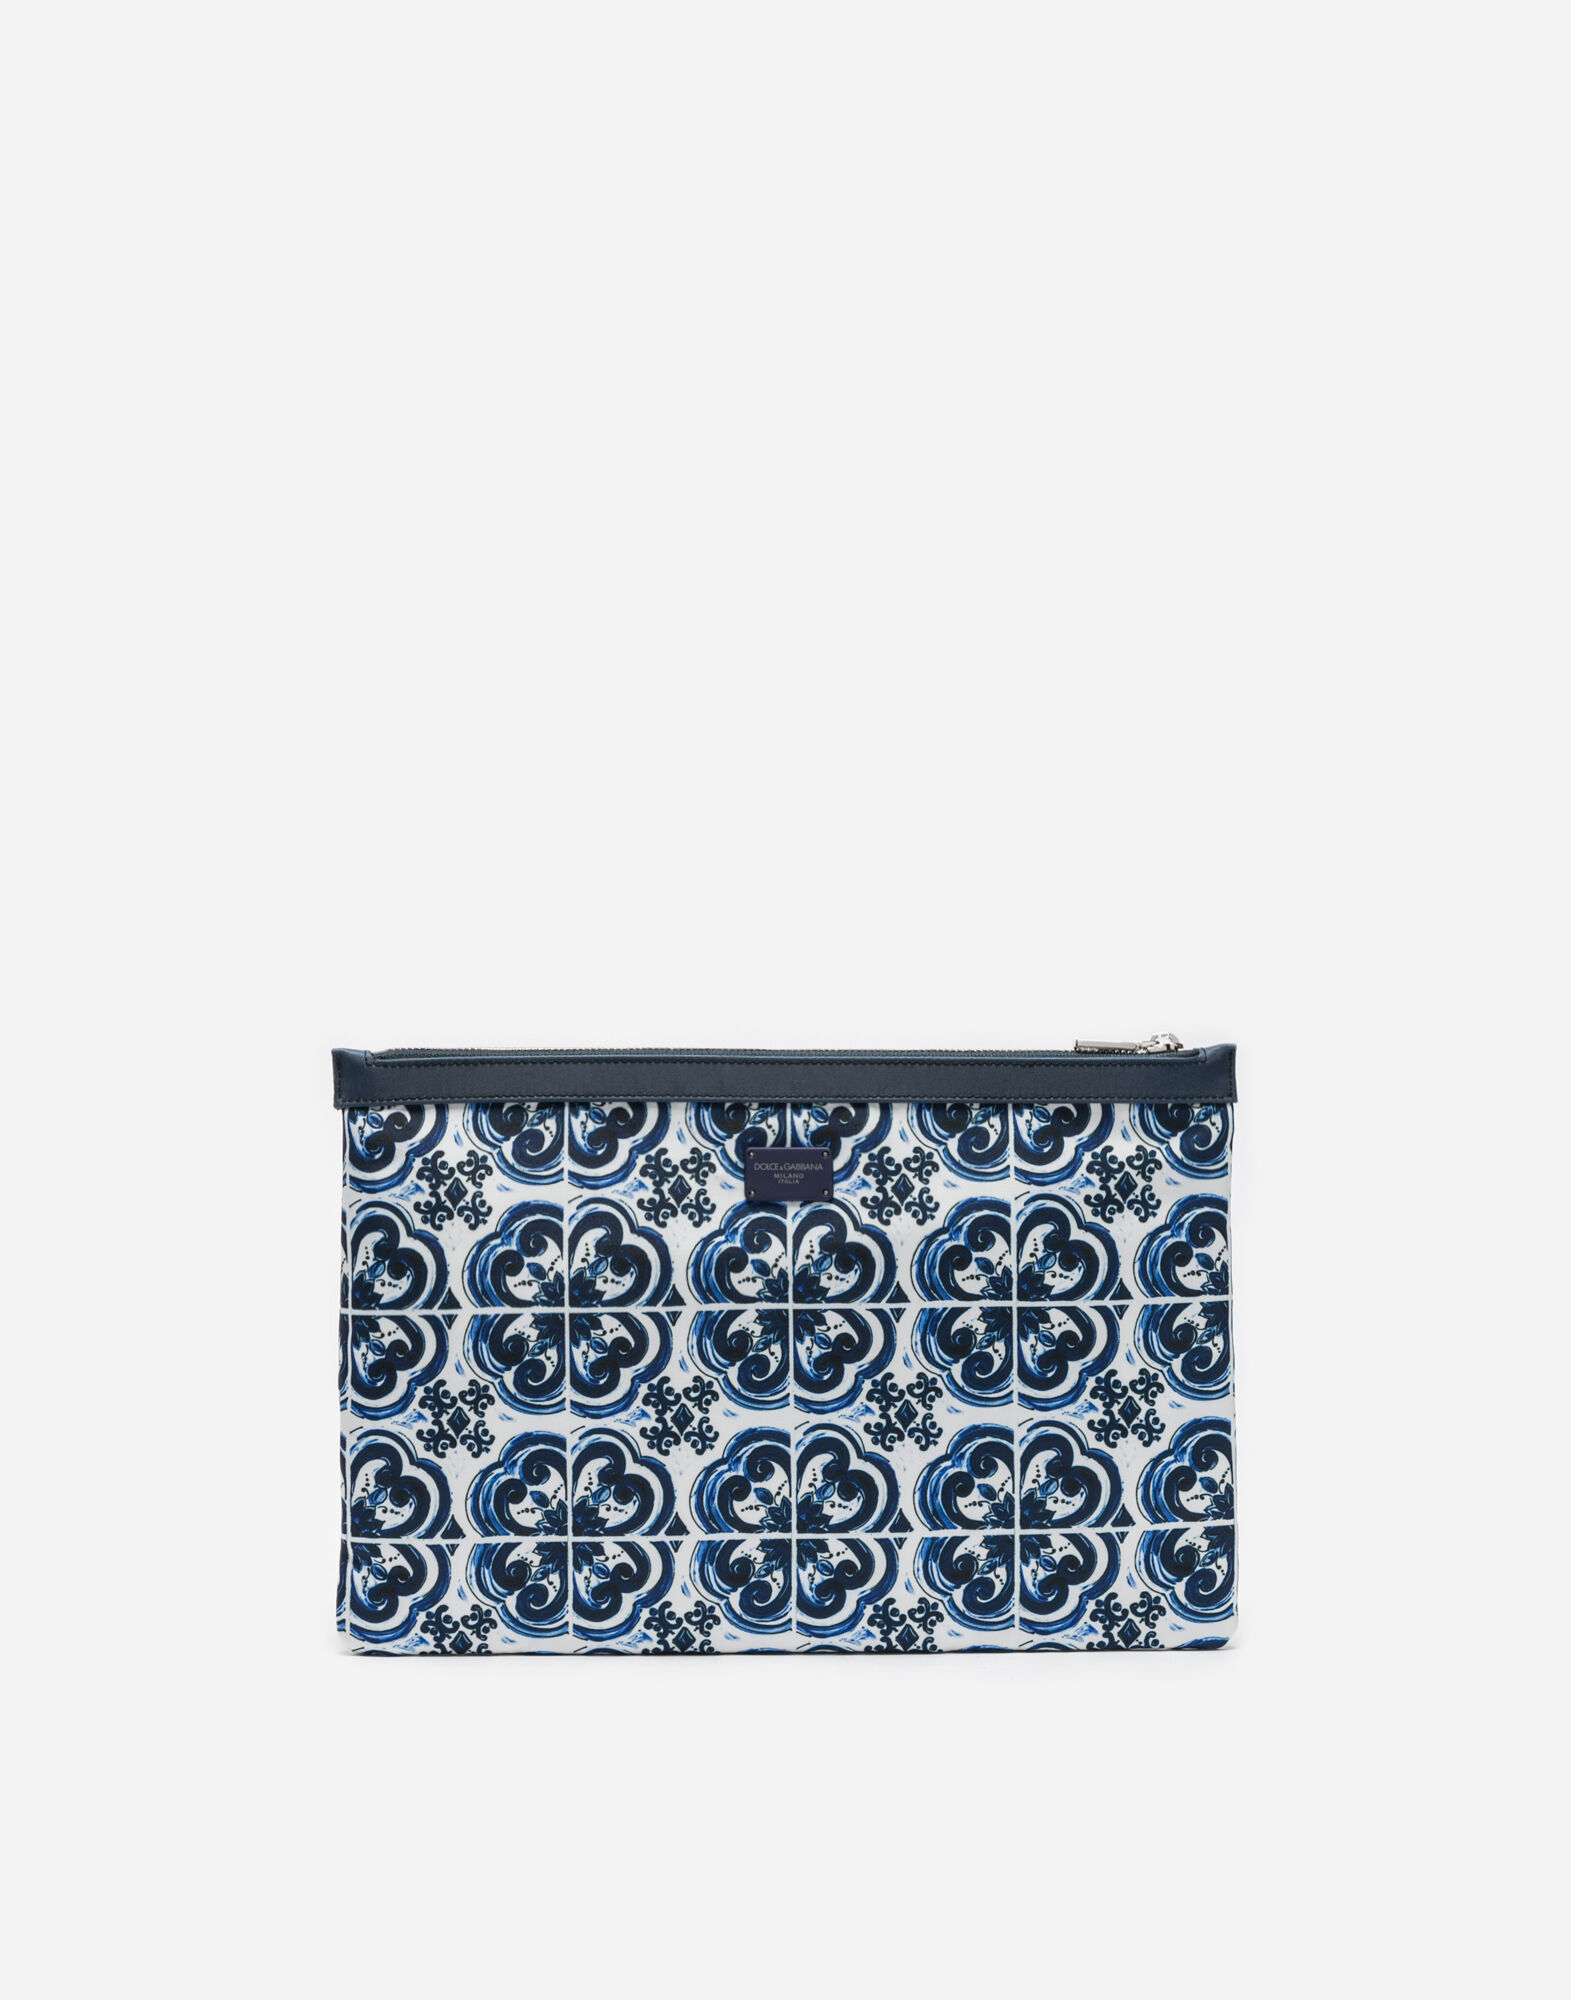 NYLON PRINTED PURSE